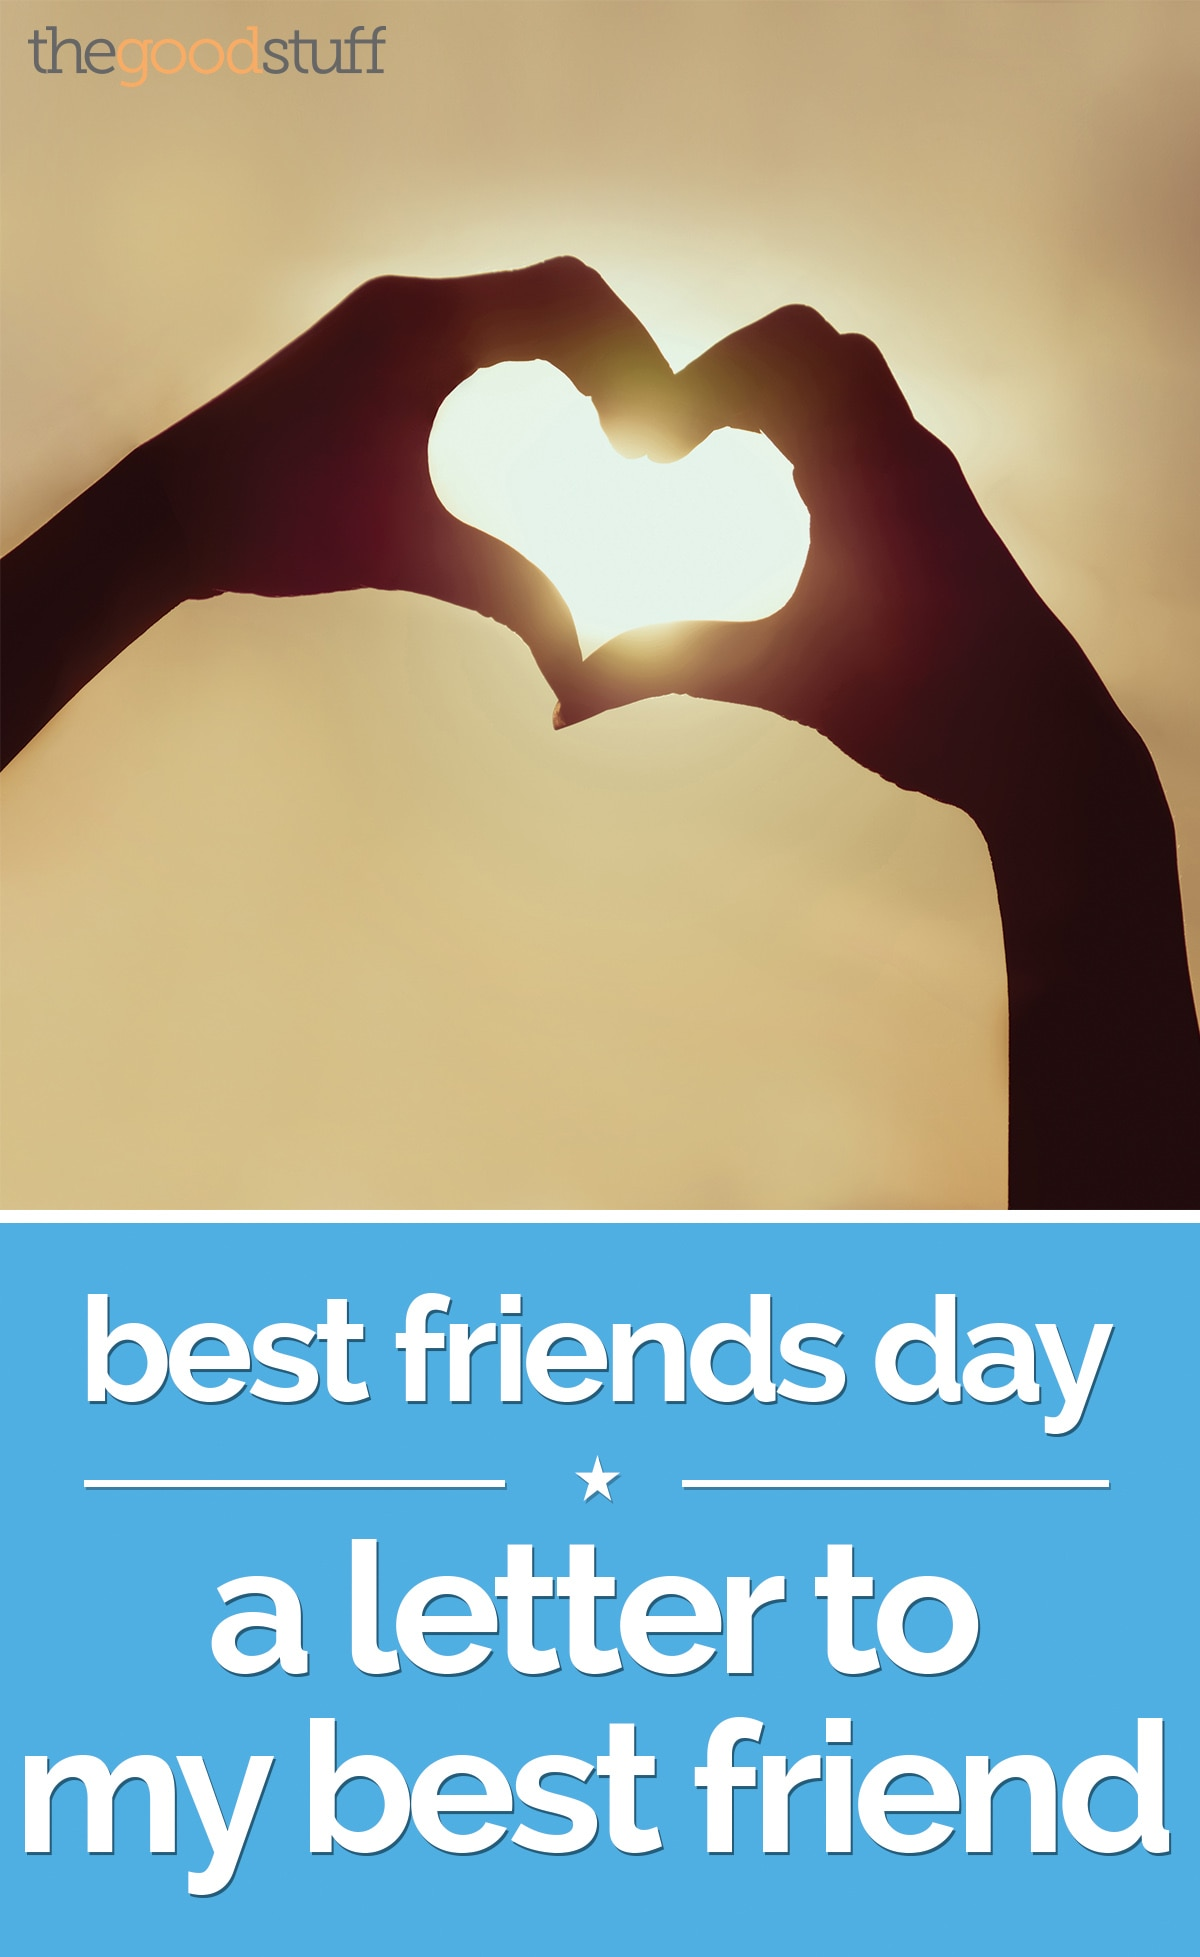 Best Friends Day: A Letter to My Best Friend | thegoodstuff